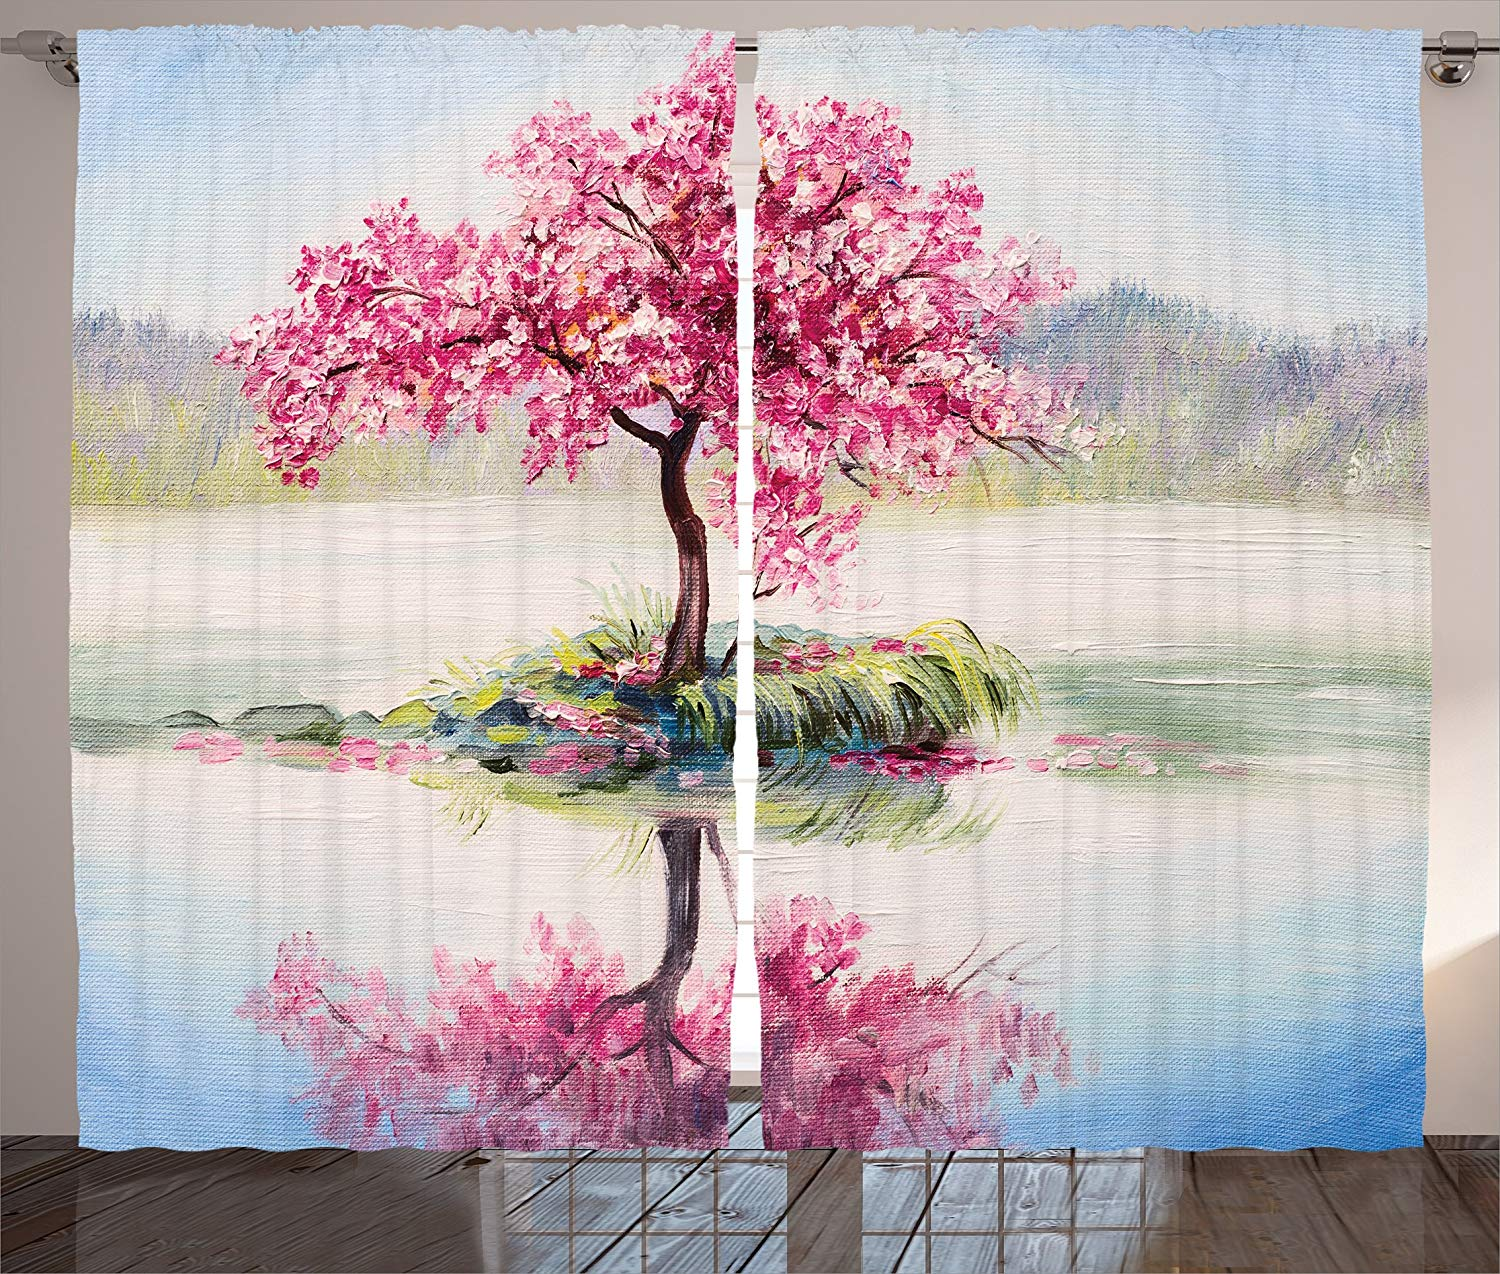 Country Decor Curtains 2 Panel Set Image Of Blooming Japanese Cherry Tree Sakura On The Lake Soft Romantic Culture Work Living